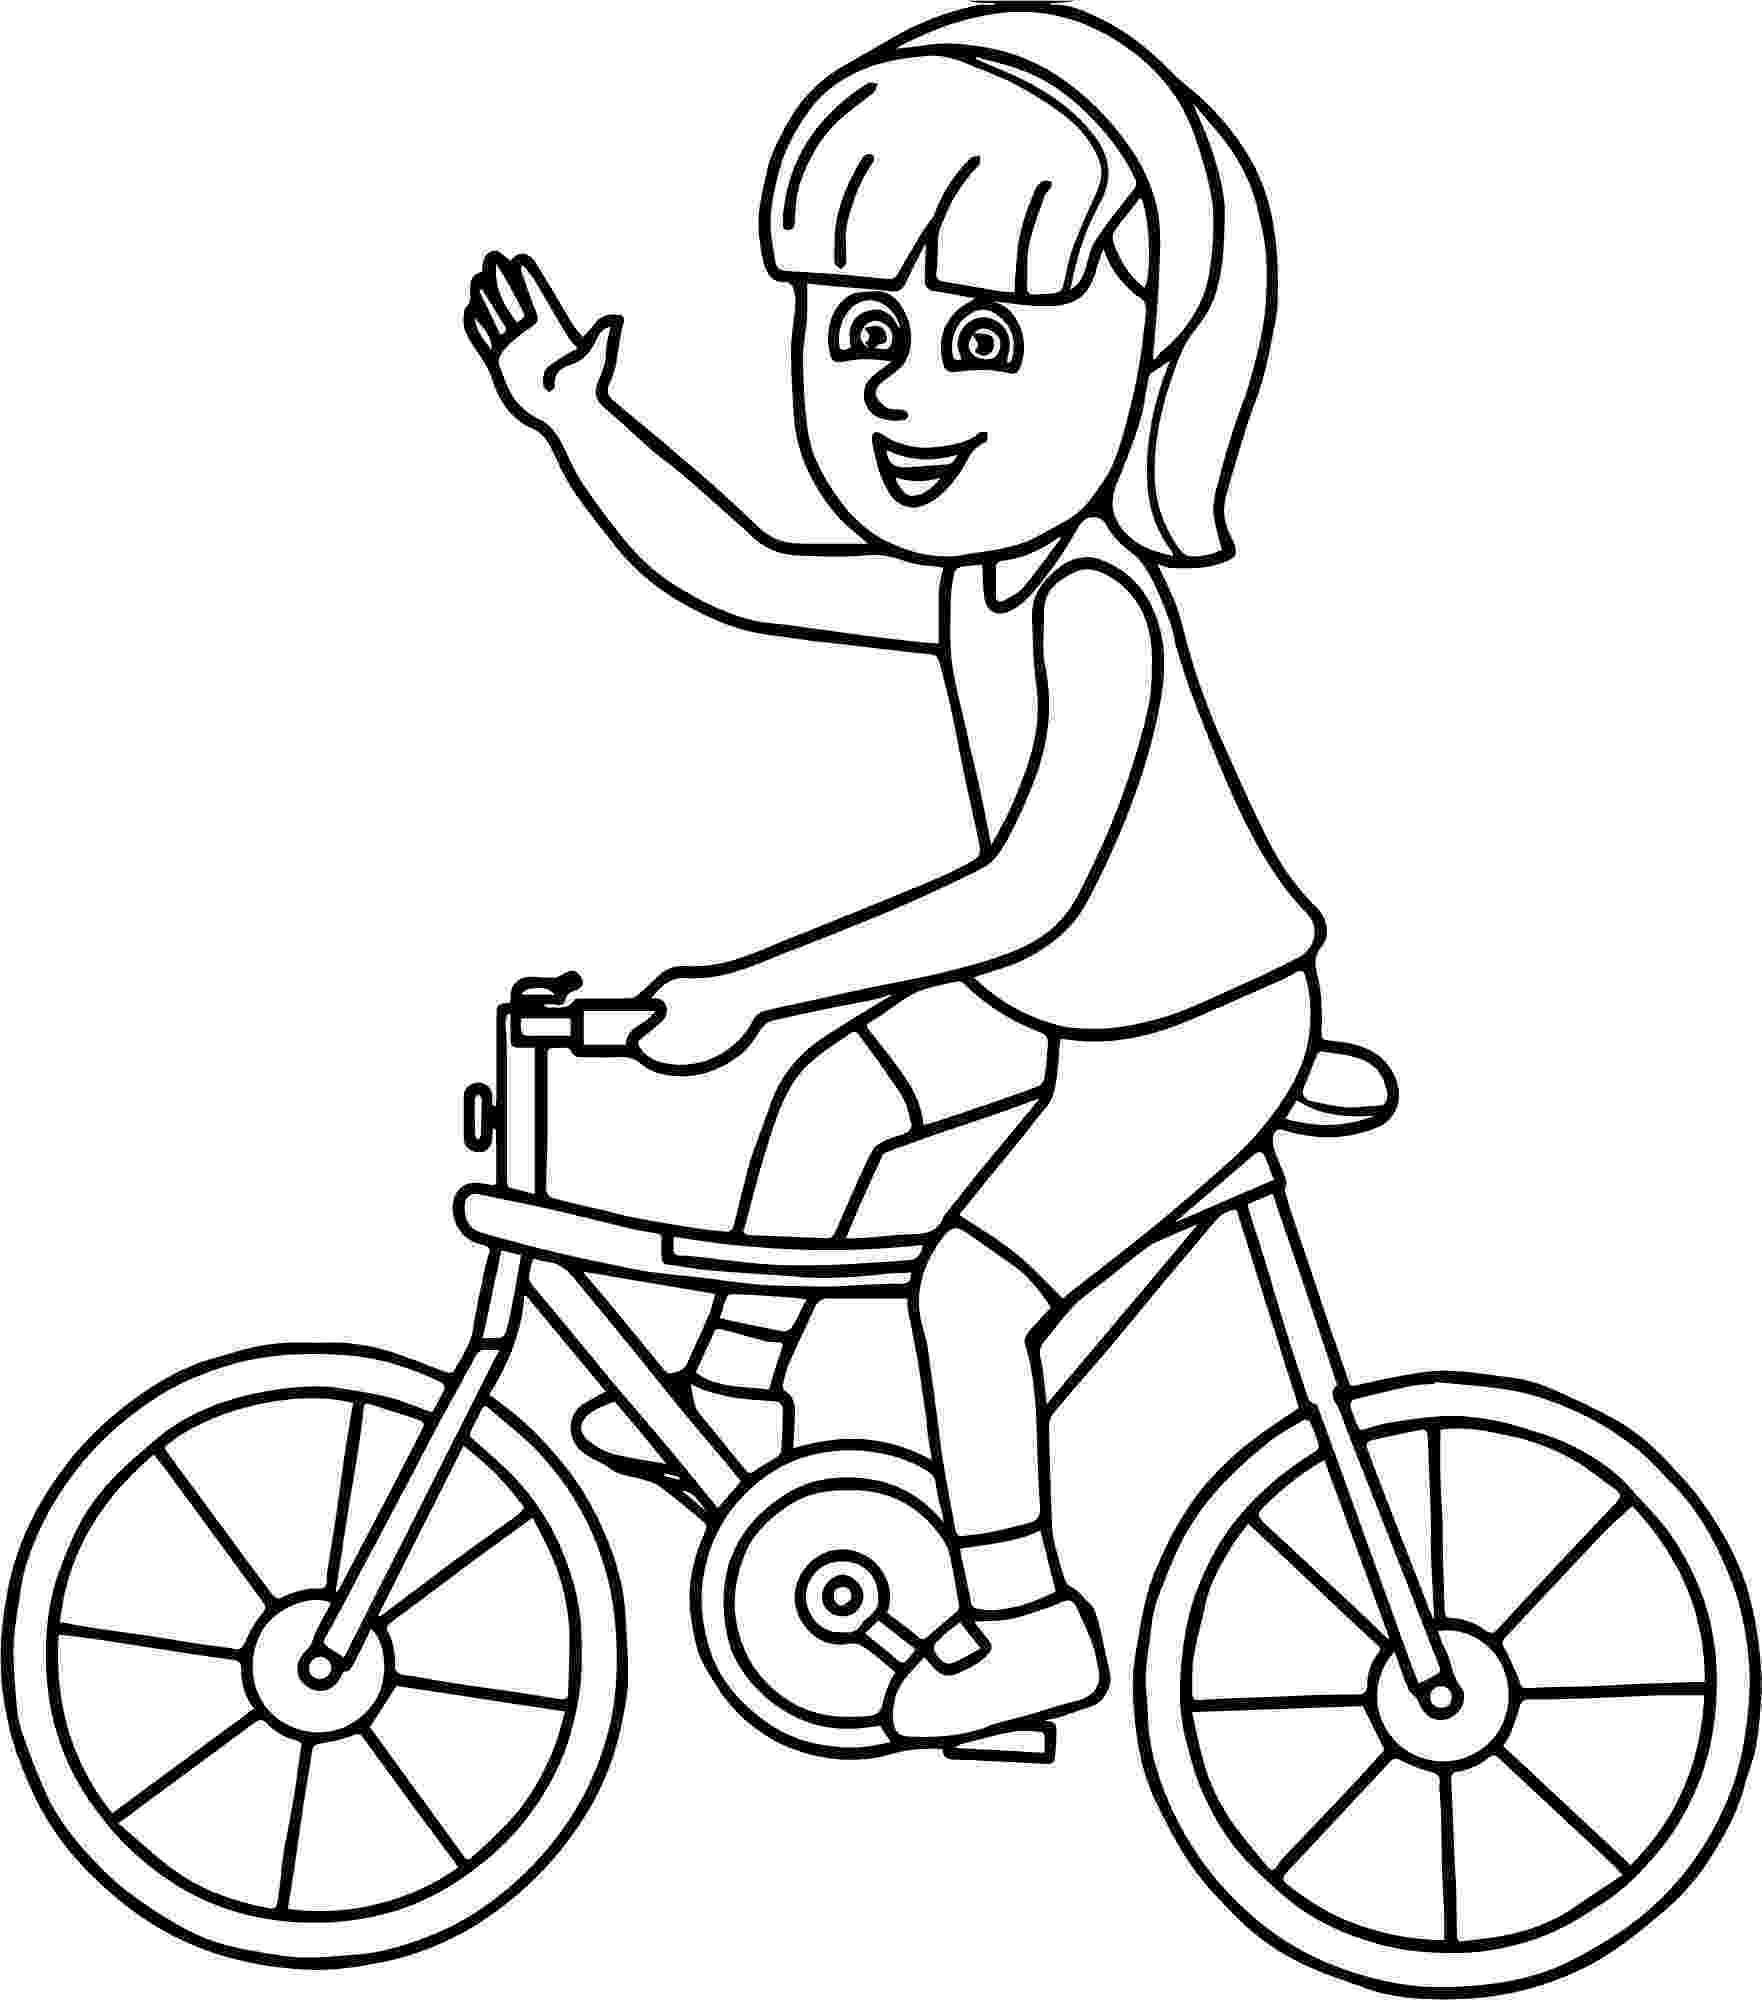 bike coloring pages cycling coloring pages kidsuki pages bike coloring